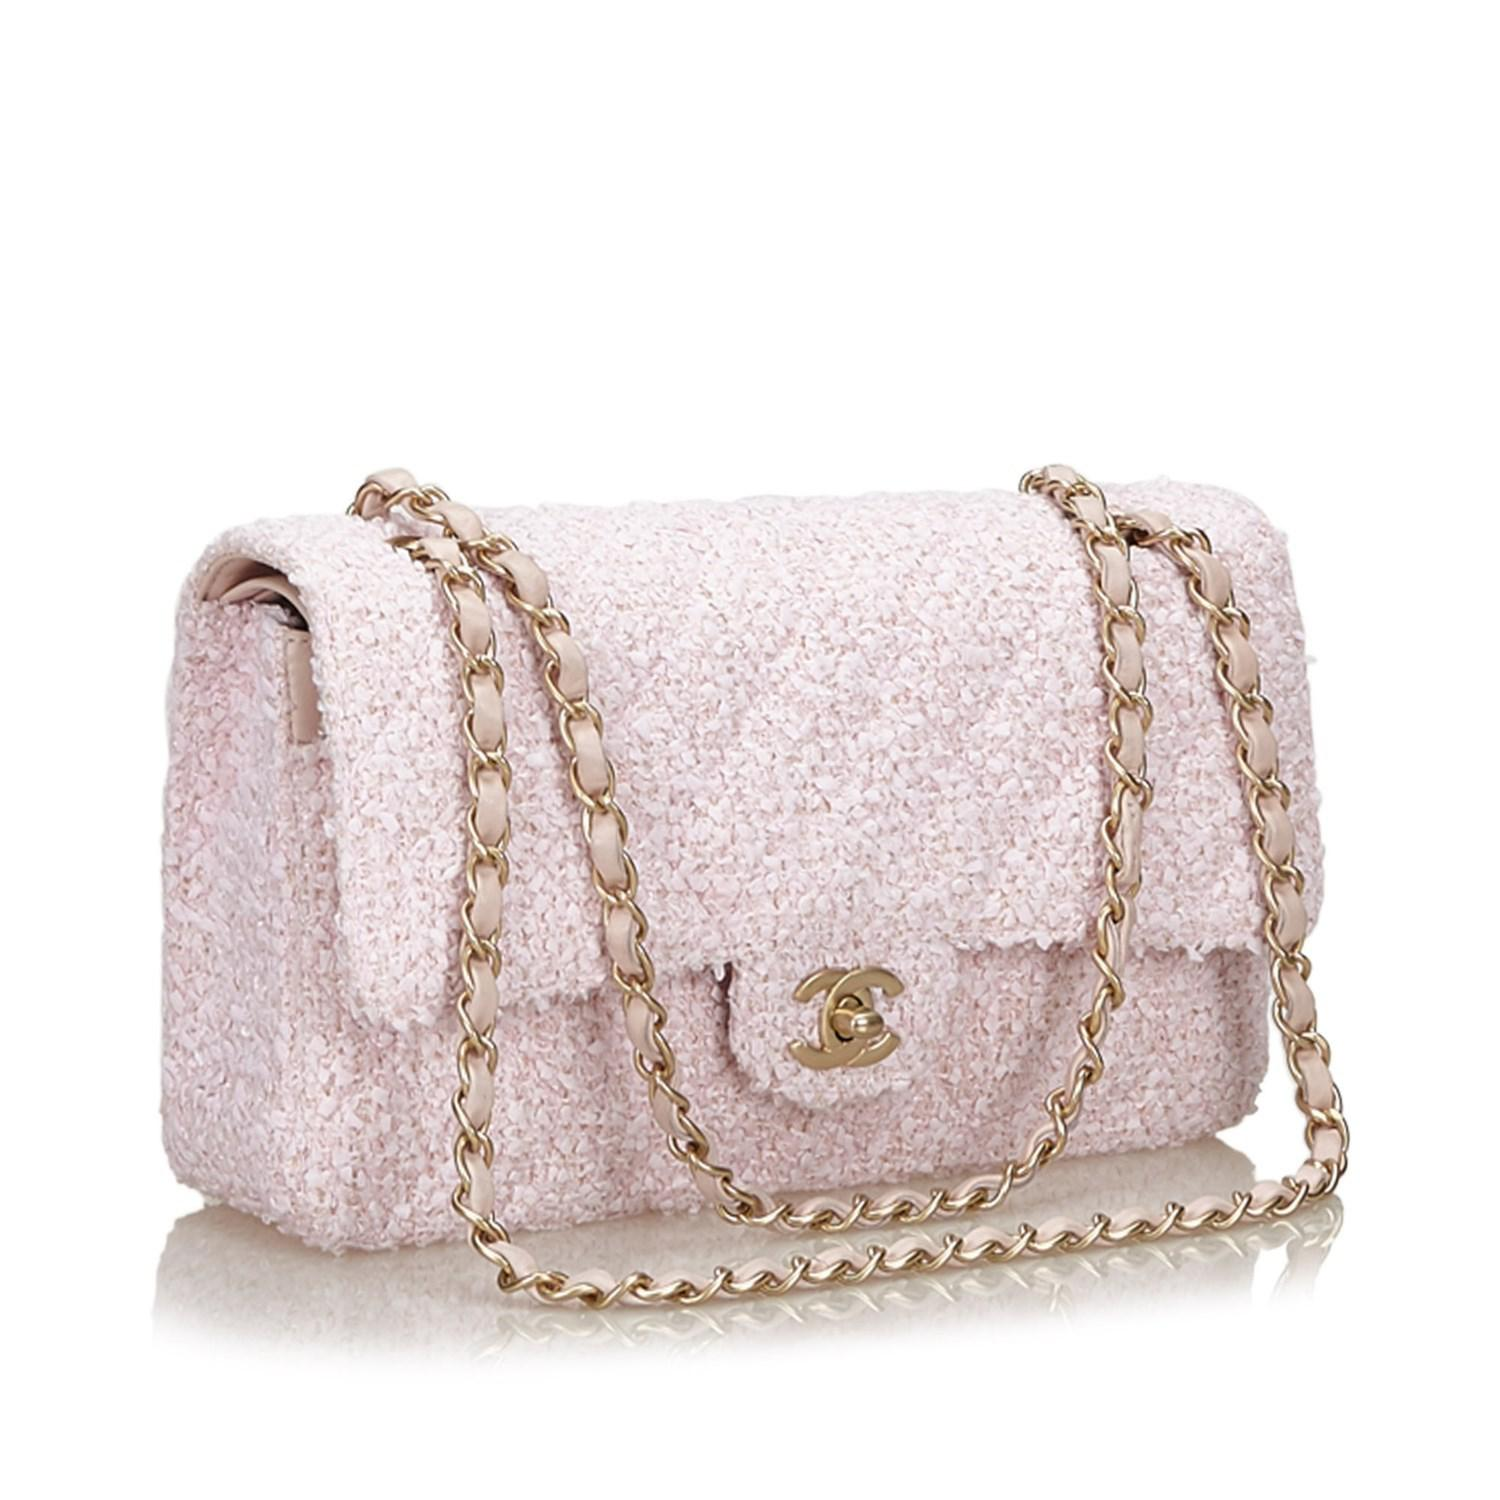 8059dc319d1b Lyst - Chanel Small Classic Tweed Double Flap Bag in Pink